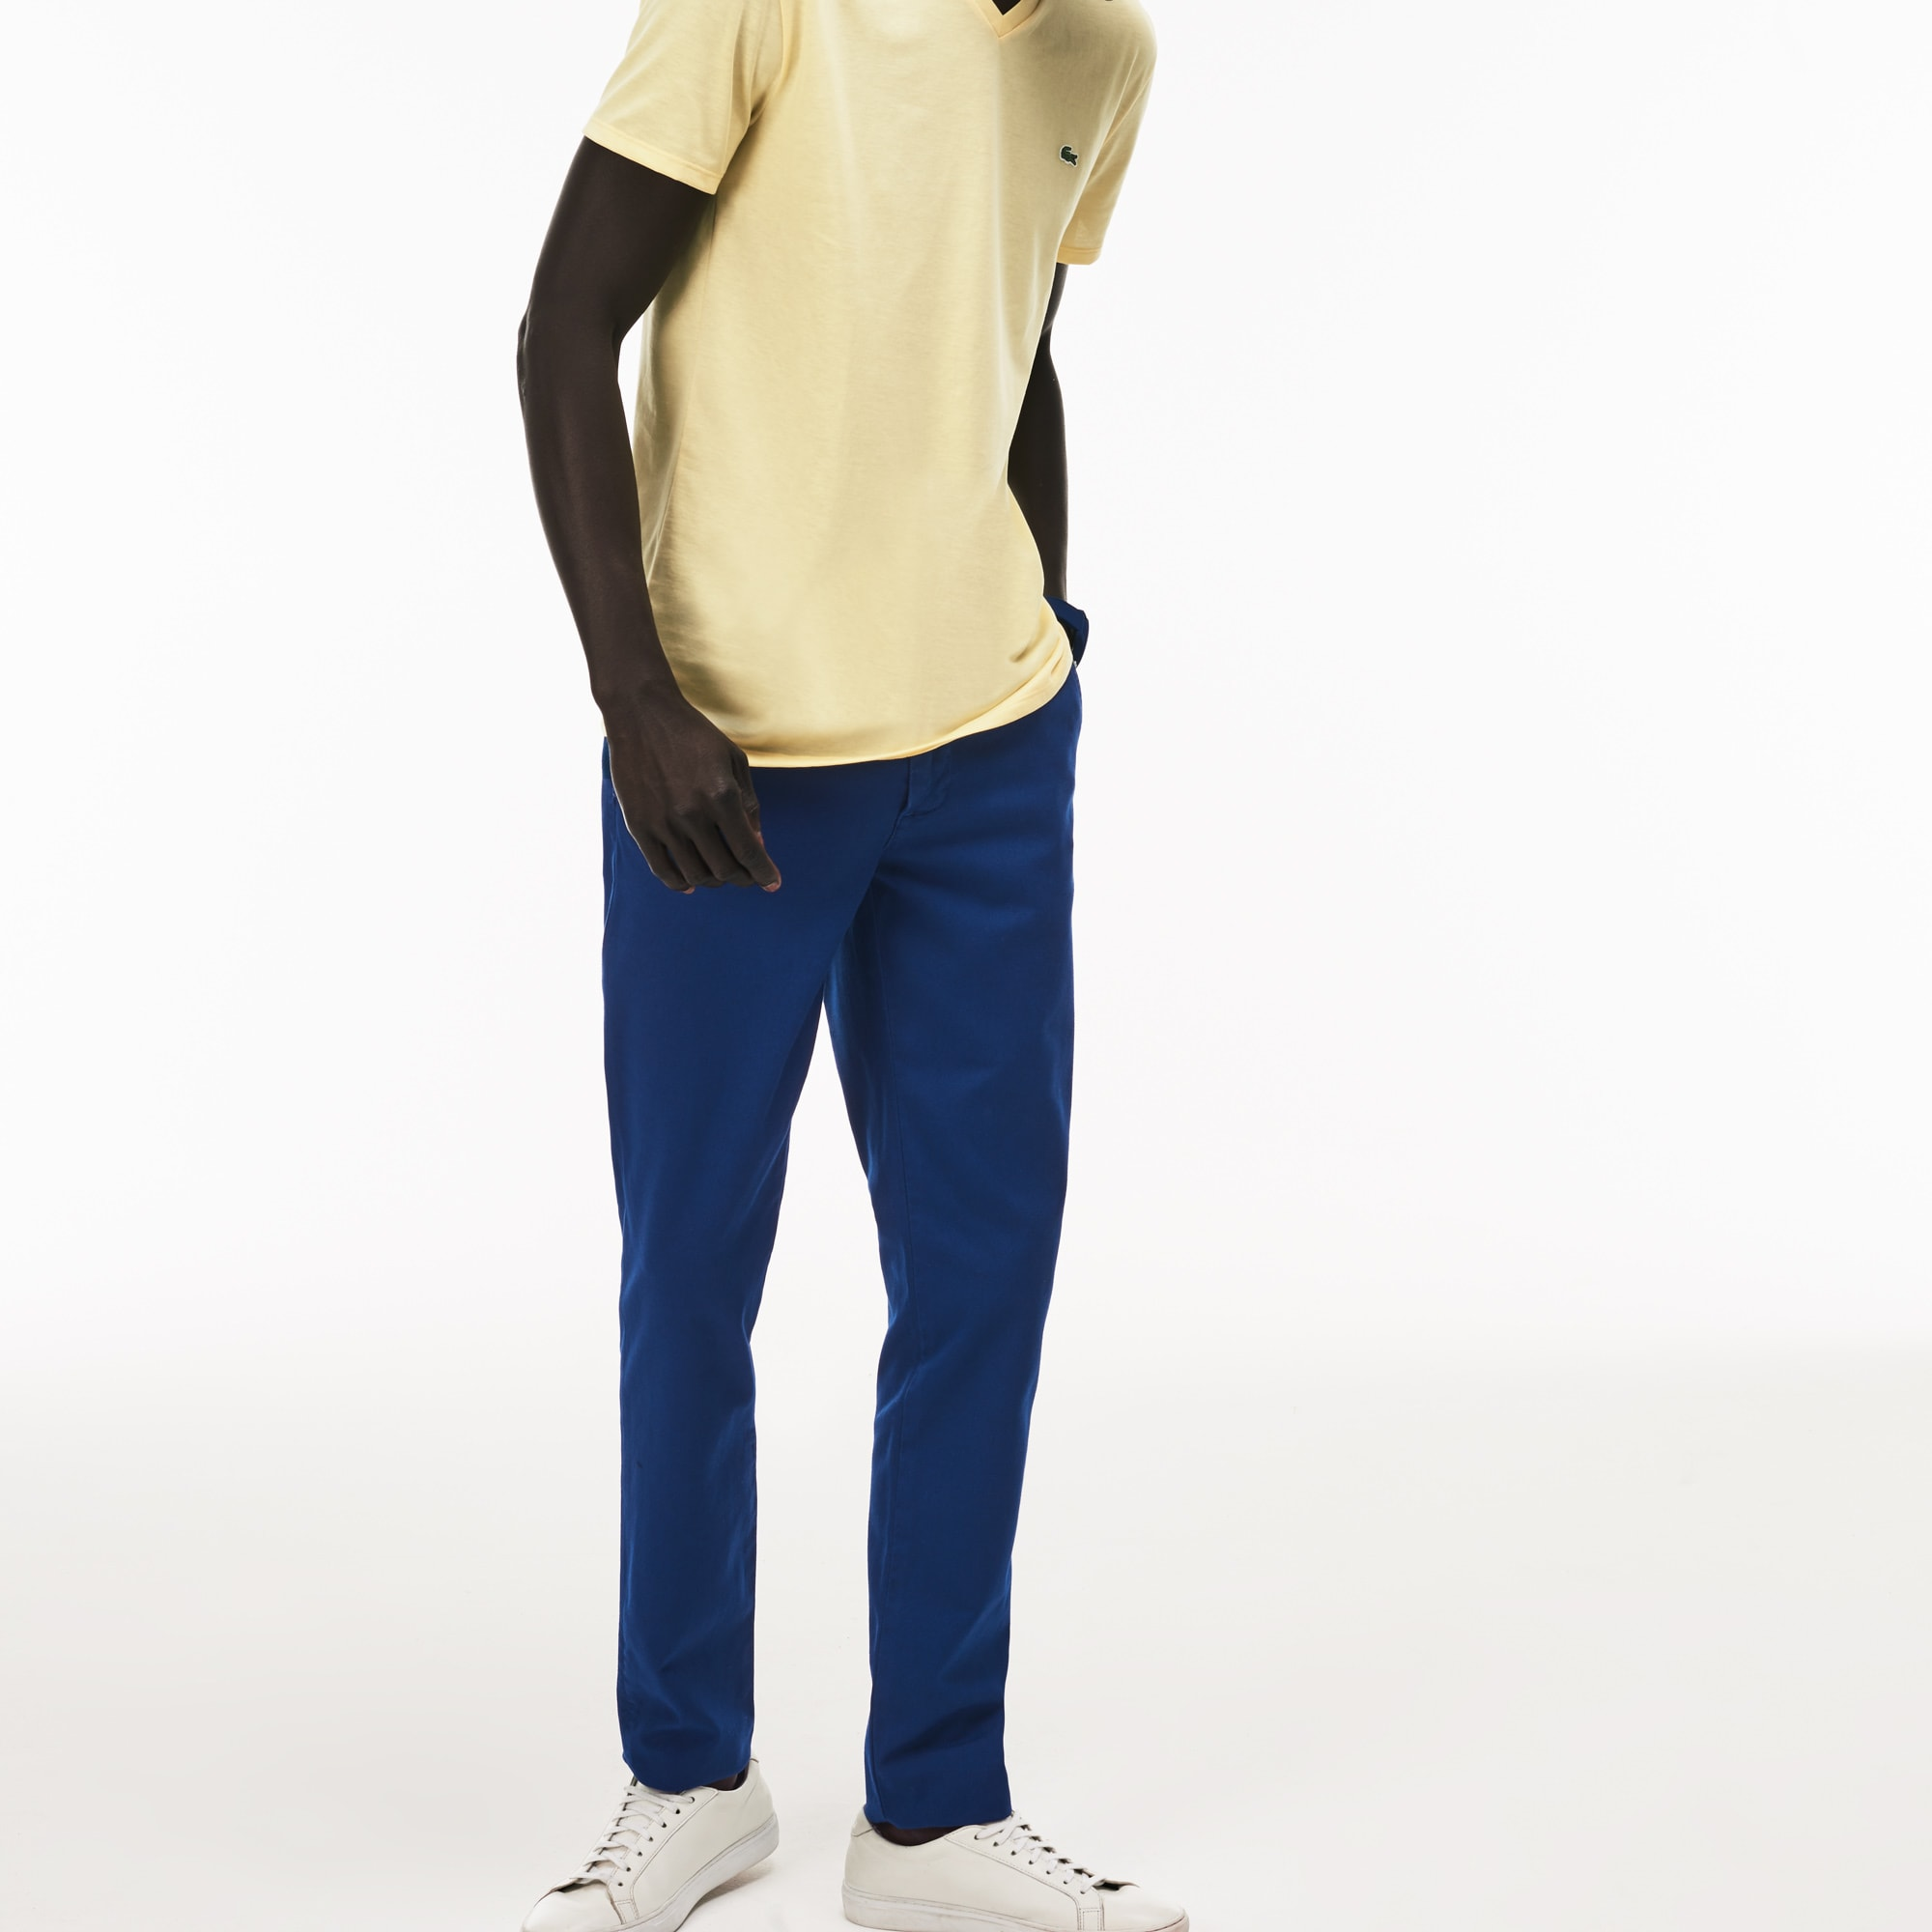 Chinos Hombre Slim Fit